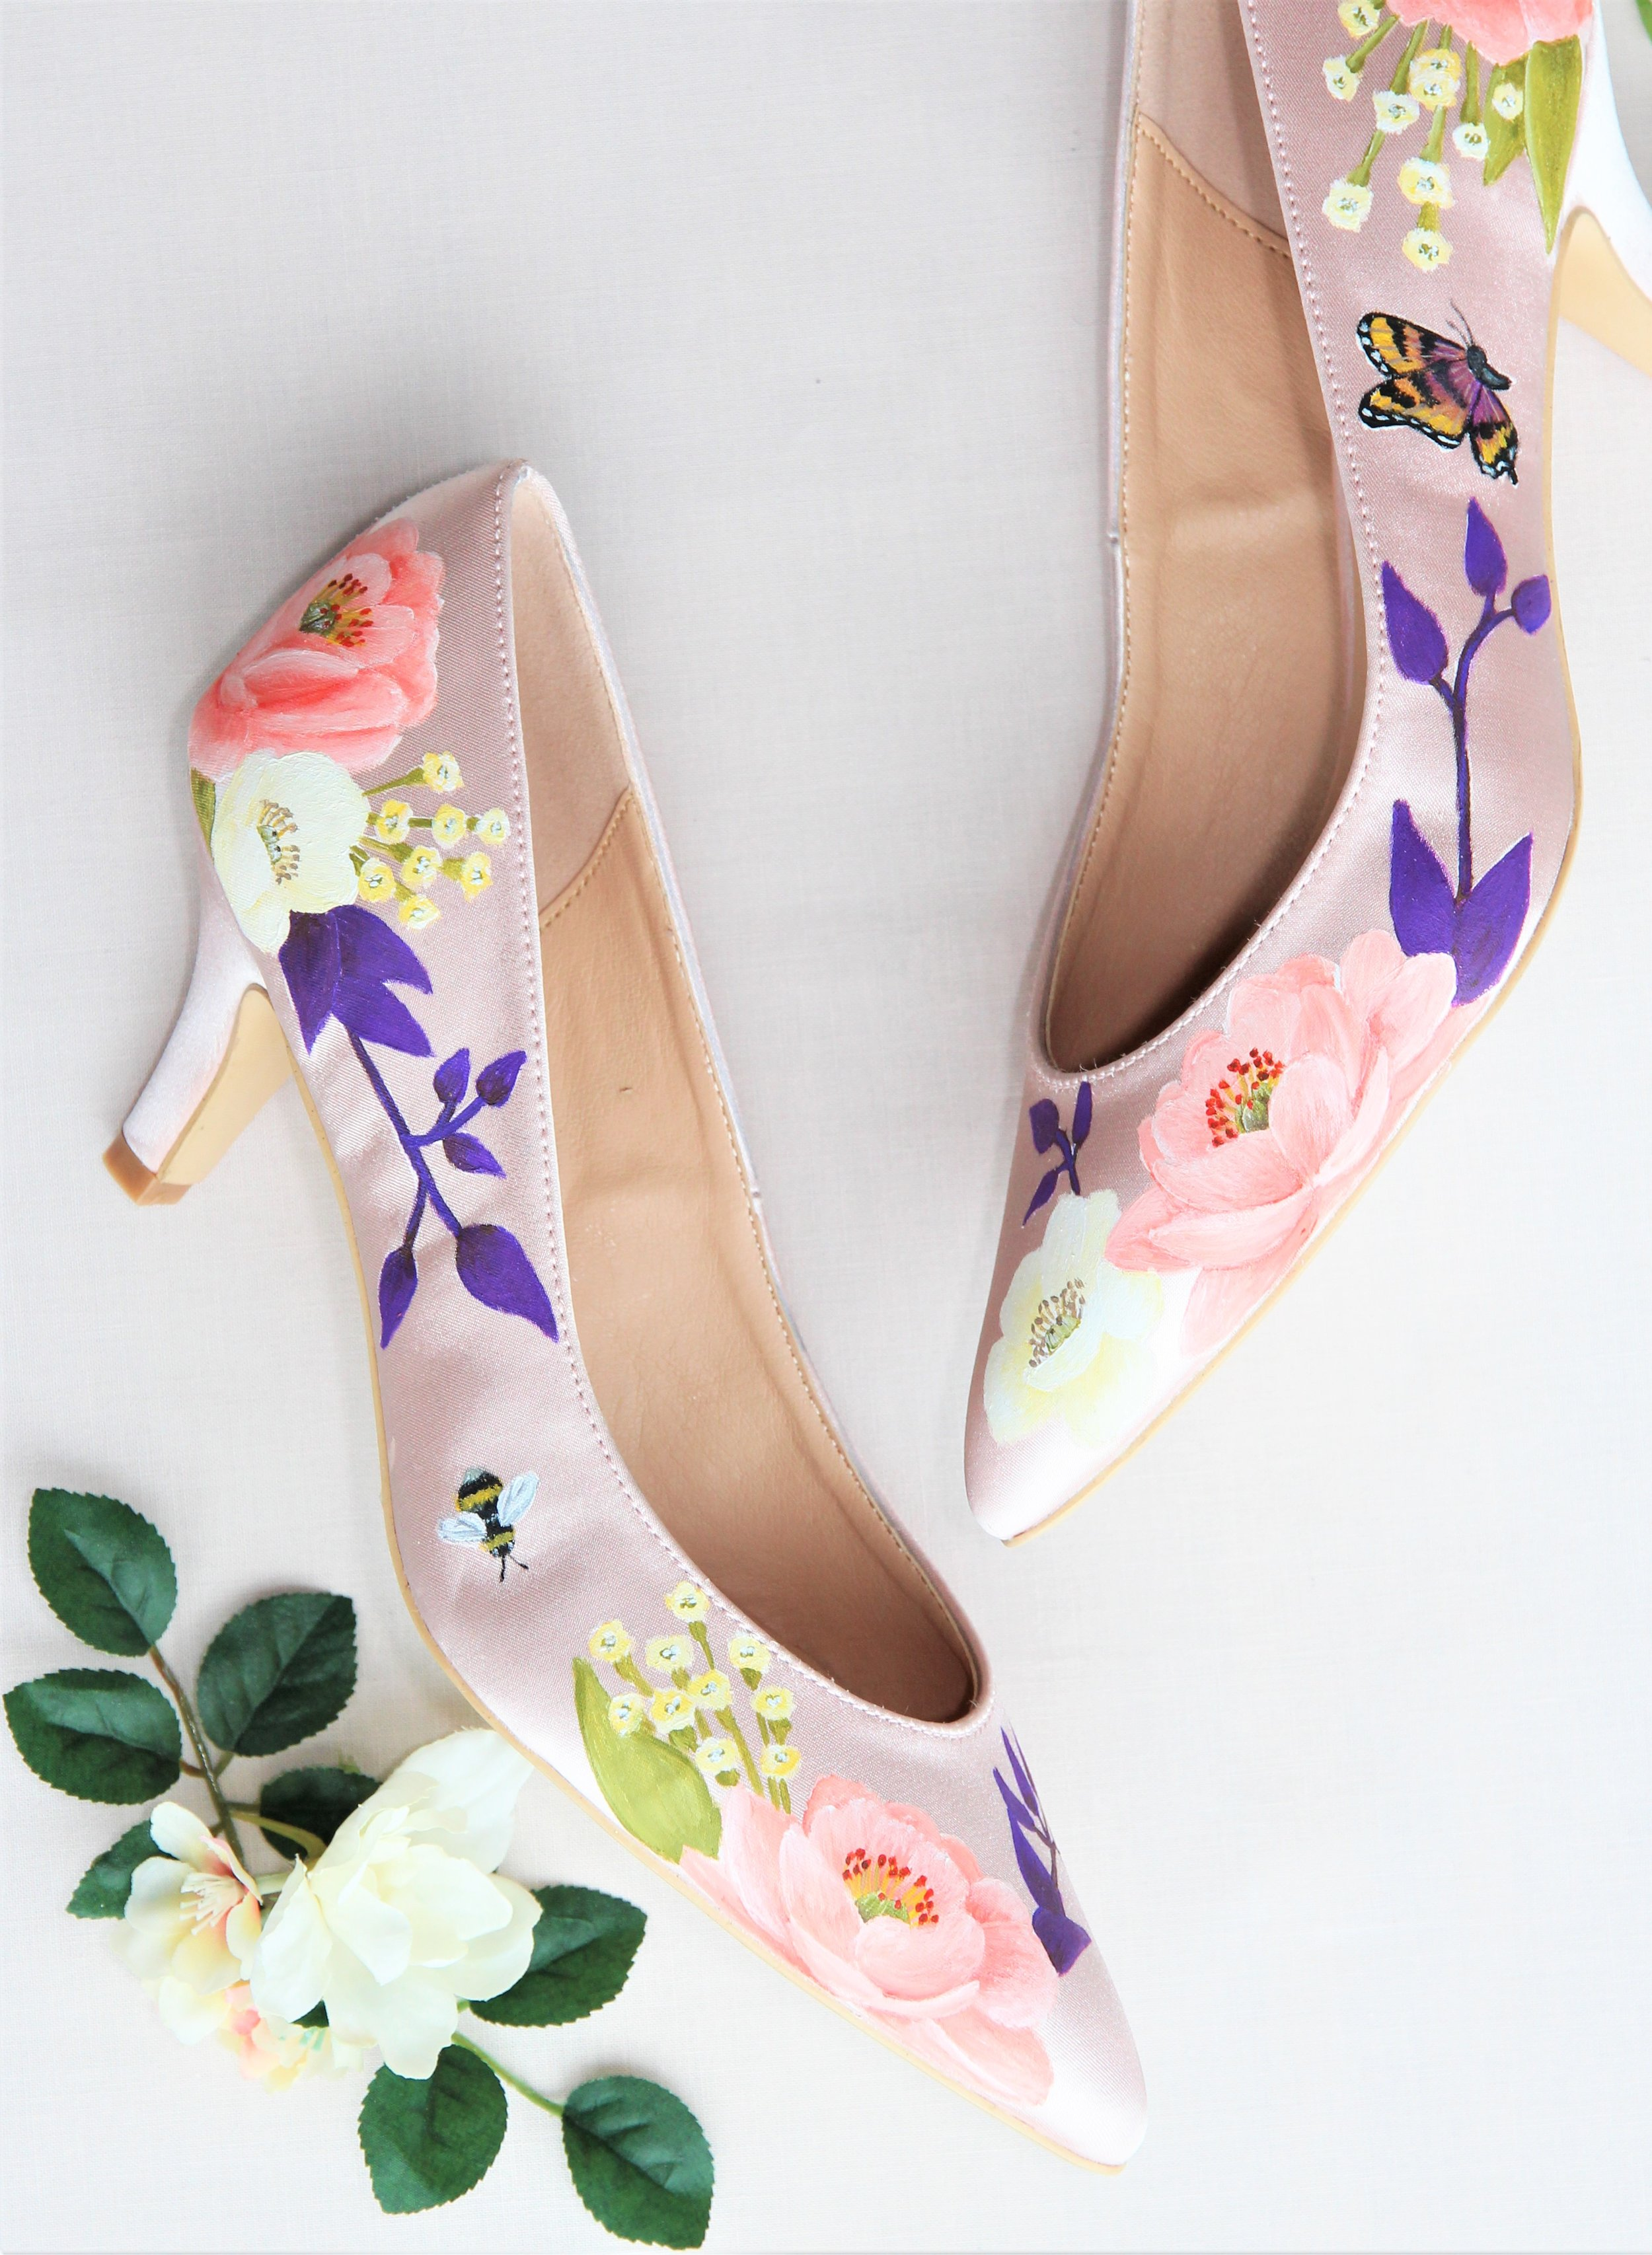 blush satin wedding shoes with butterfly and bumblebee print